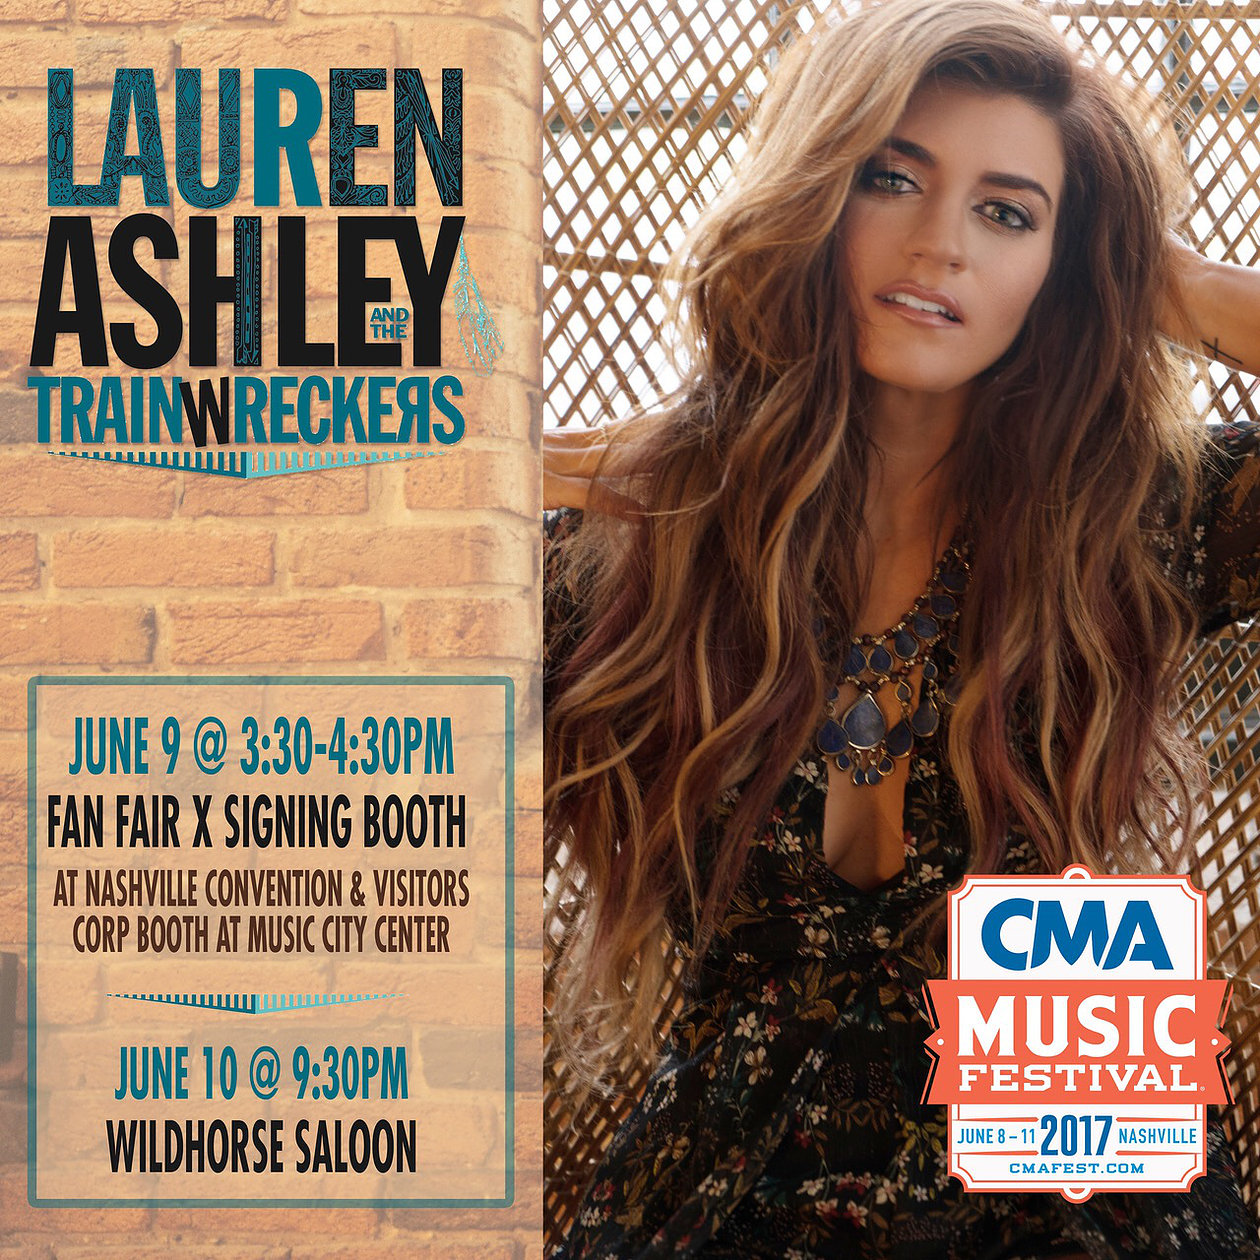 Lauren Ashley And The Trainwreckers Gear Up For Exciting CMA Fest